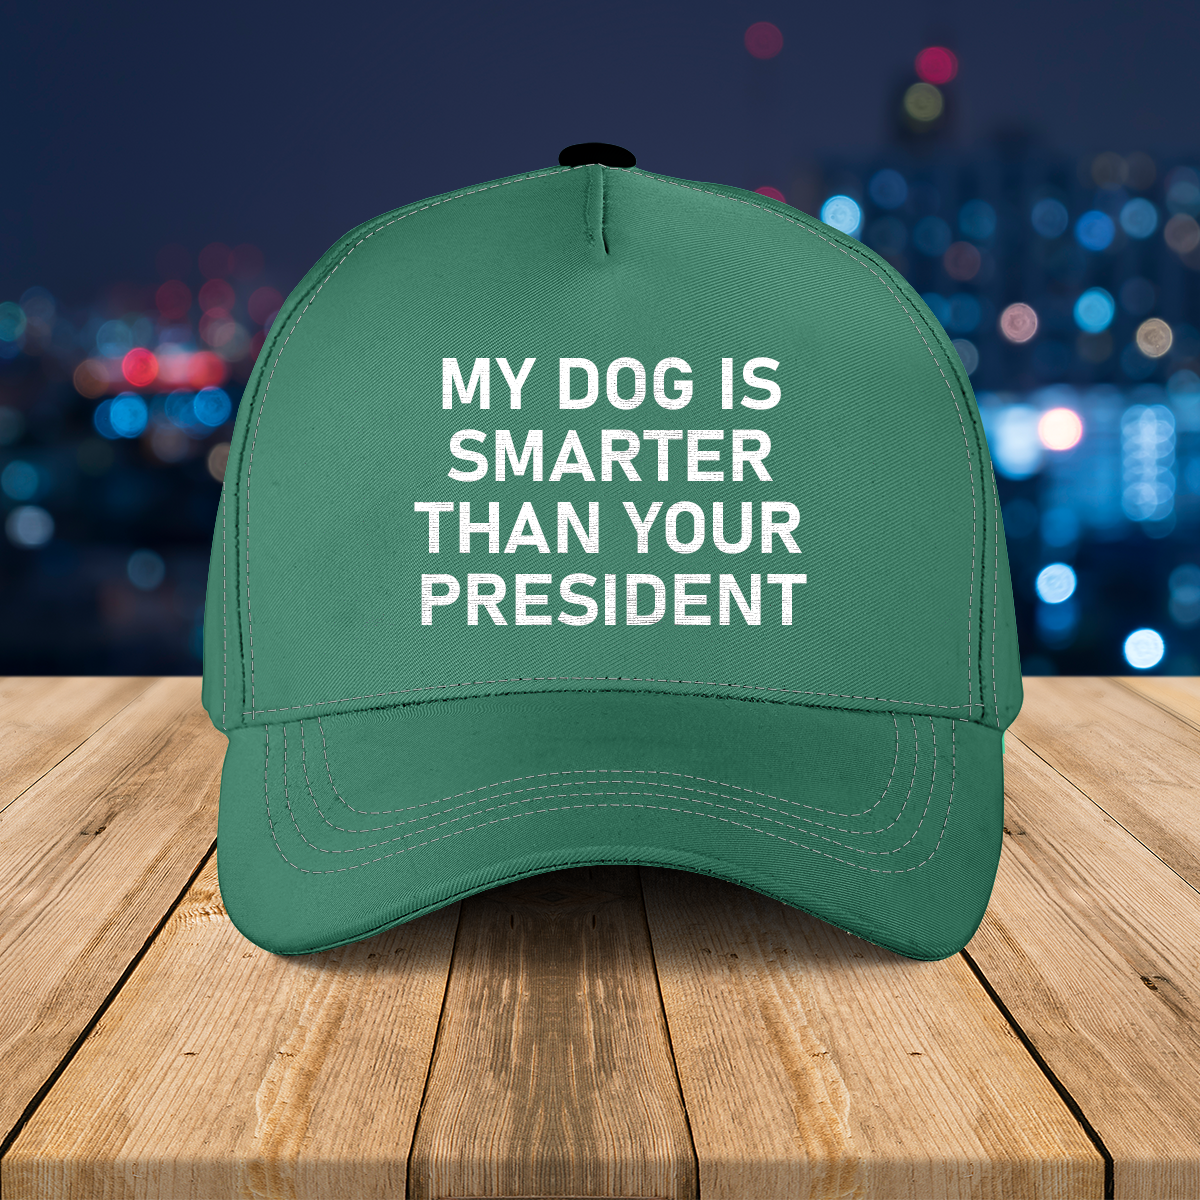 My dog Is smarter than your president cap1